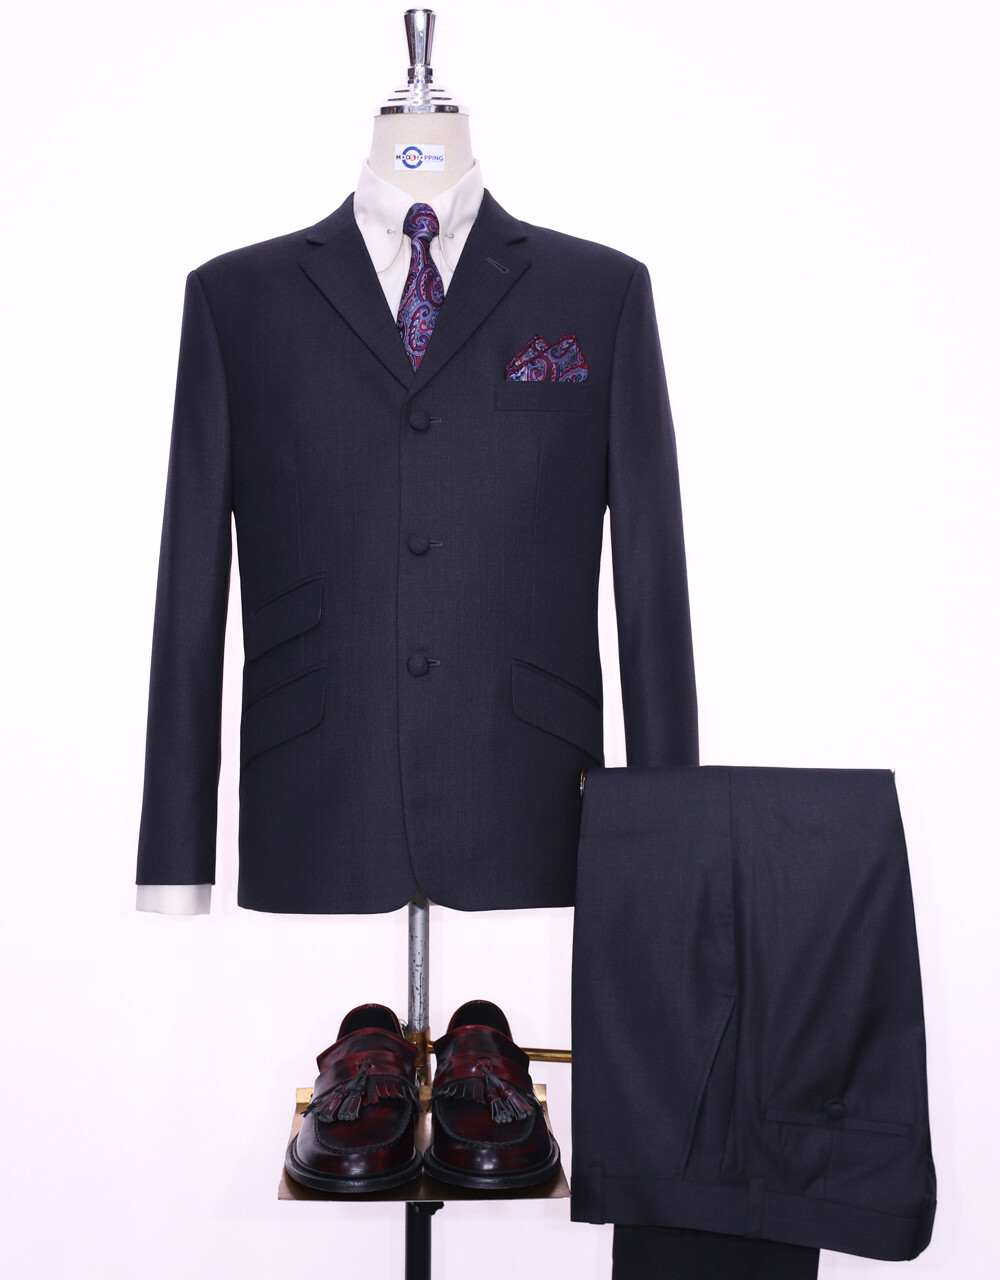 Charcoal Grey Tailored Mod Suit 60s Mod Clothing